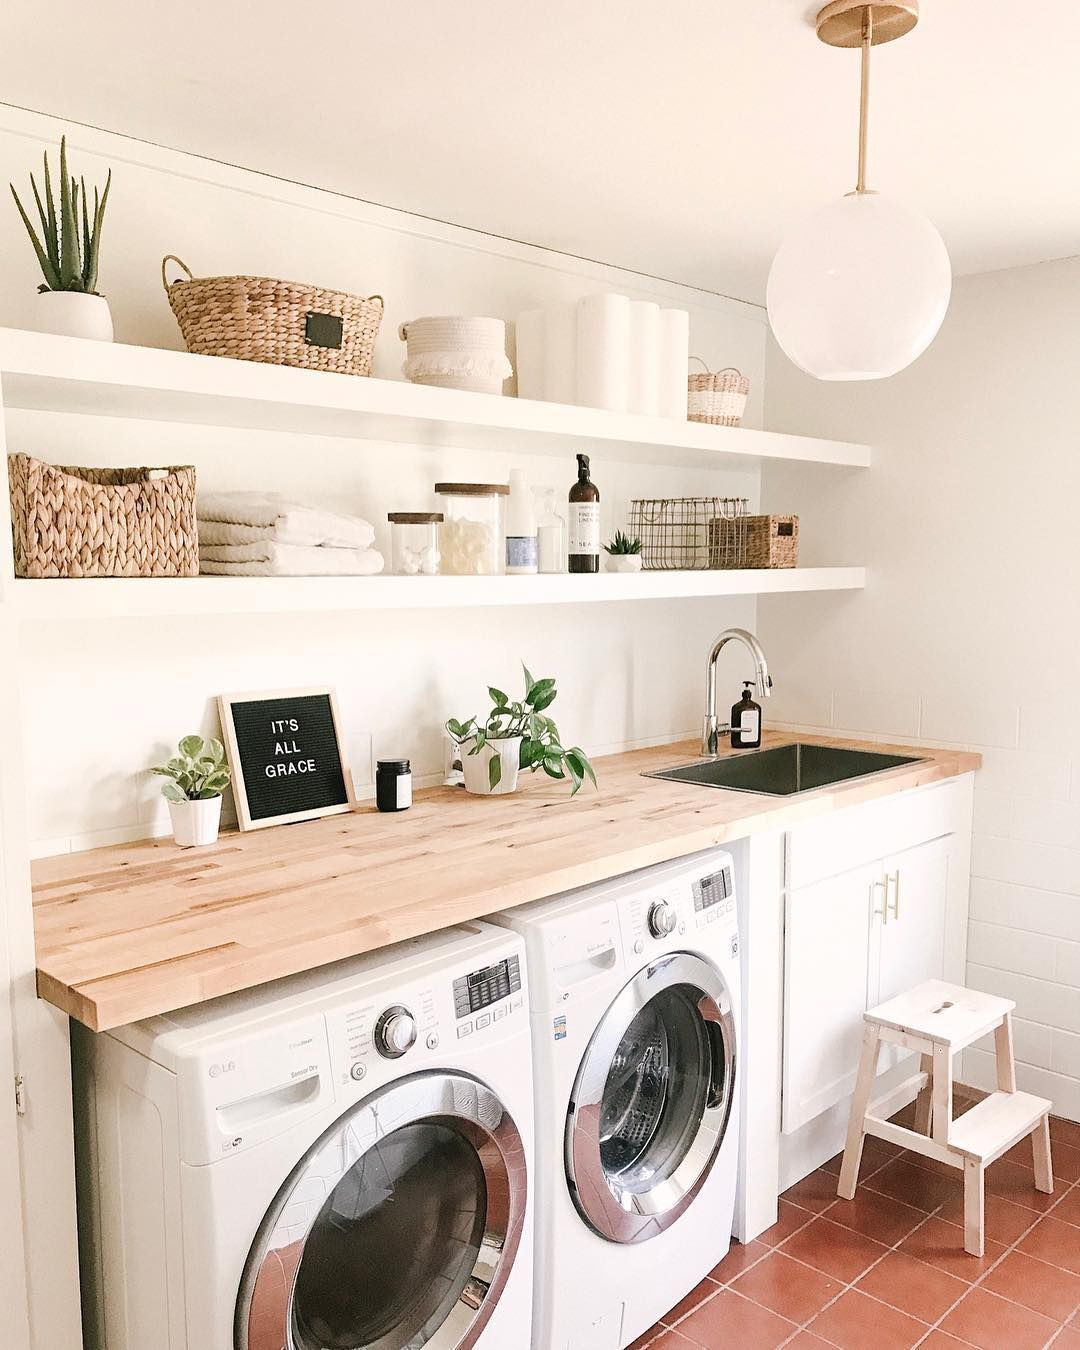 Jessica Stamm On Instagram Last Summer The Purchase Of A New Washer And Drye Drye Instagram Dream Laundry Room Modern Laundry Rooms Laundry Room Remodel